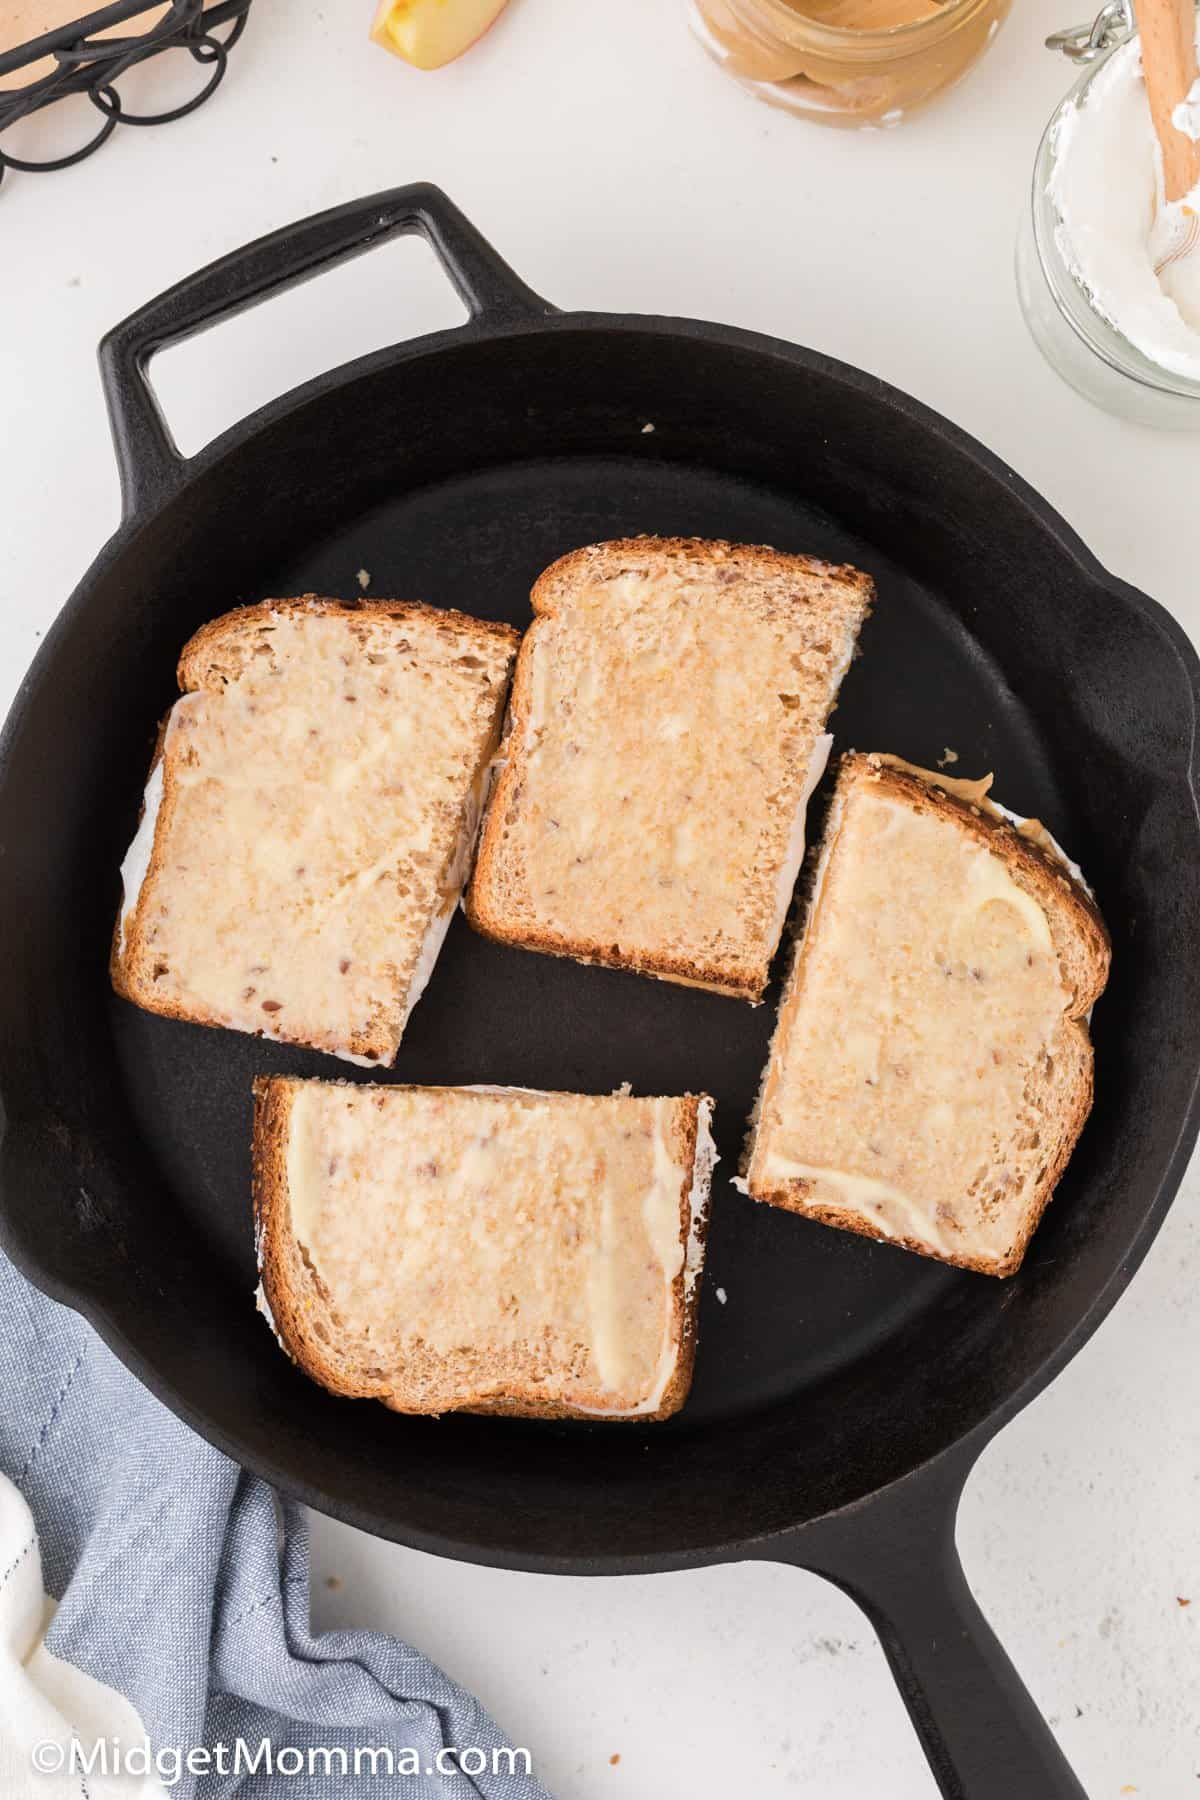 Grilled Peanut Butter and Marshmallow Fluff Sandwich in a pan cooking